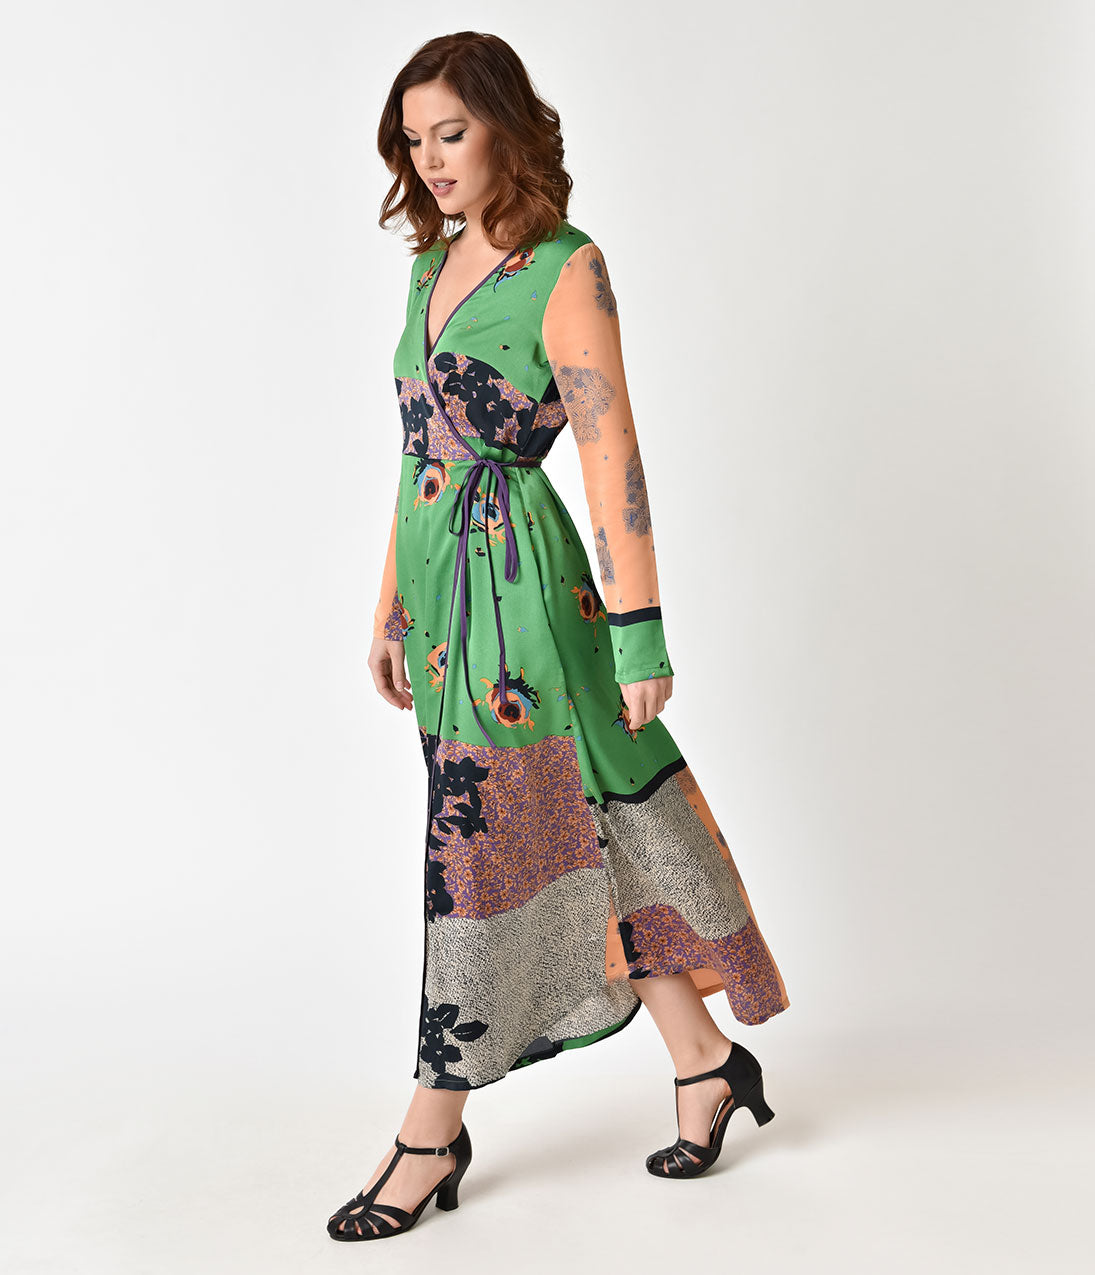 1960s Dresses: New 60s Style Dresses – Jackie O to Mod 1970s Style Green  Multi Colored Floral Maxi Wrap Dress $63.00 AT vintagedancer.com